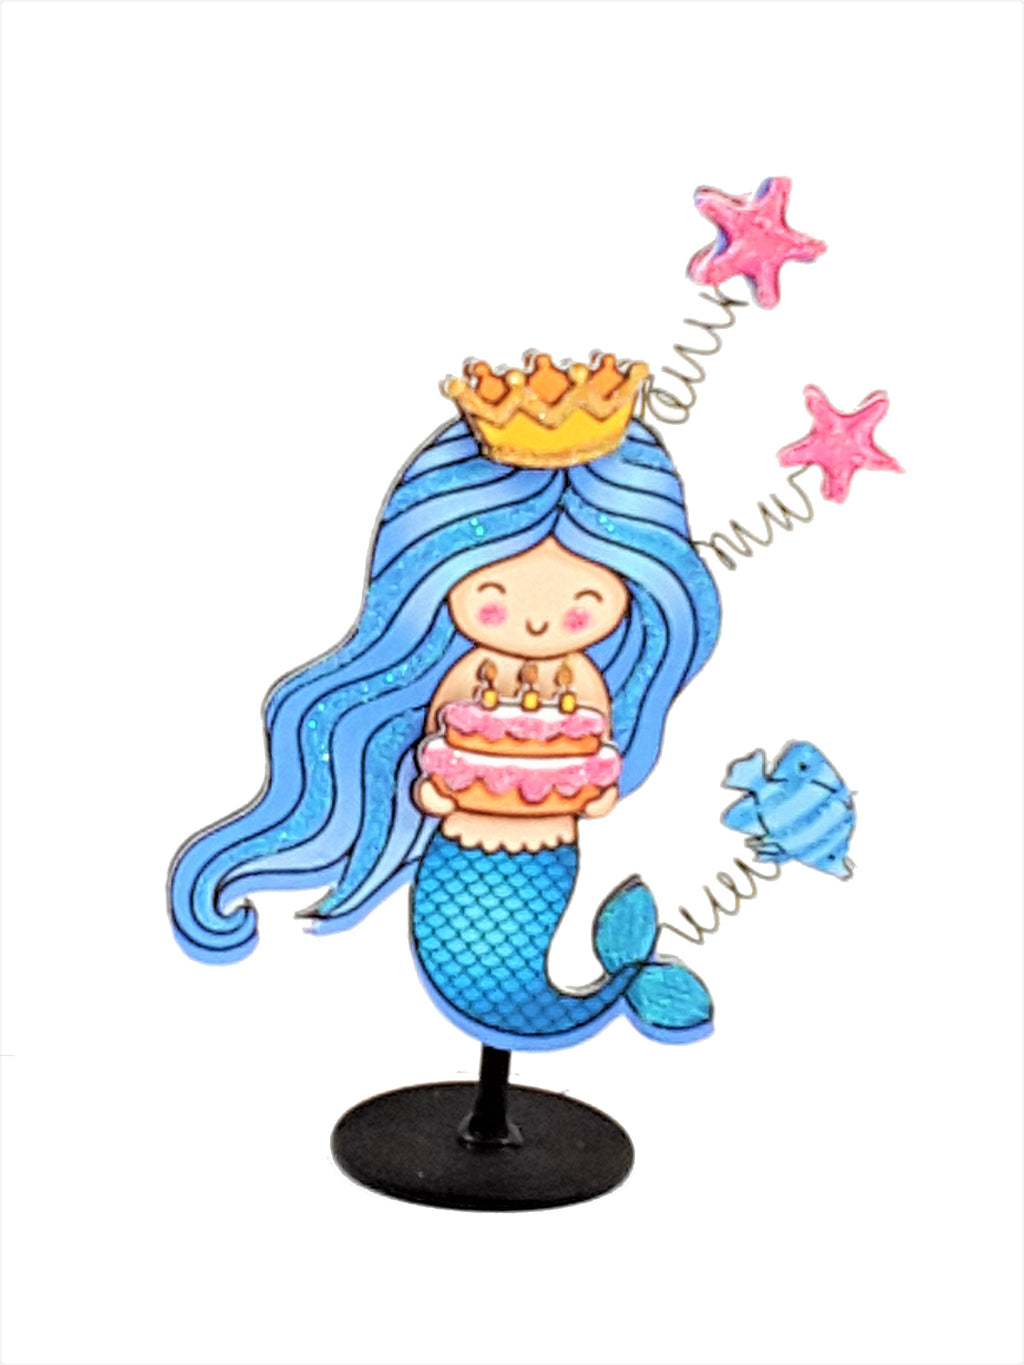 3D Personalized Happy Birthday Card with Mermaid - TheLastWordBish.com